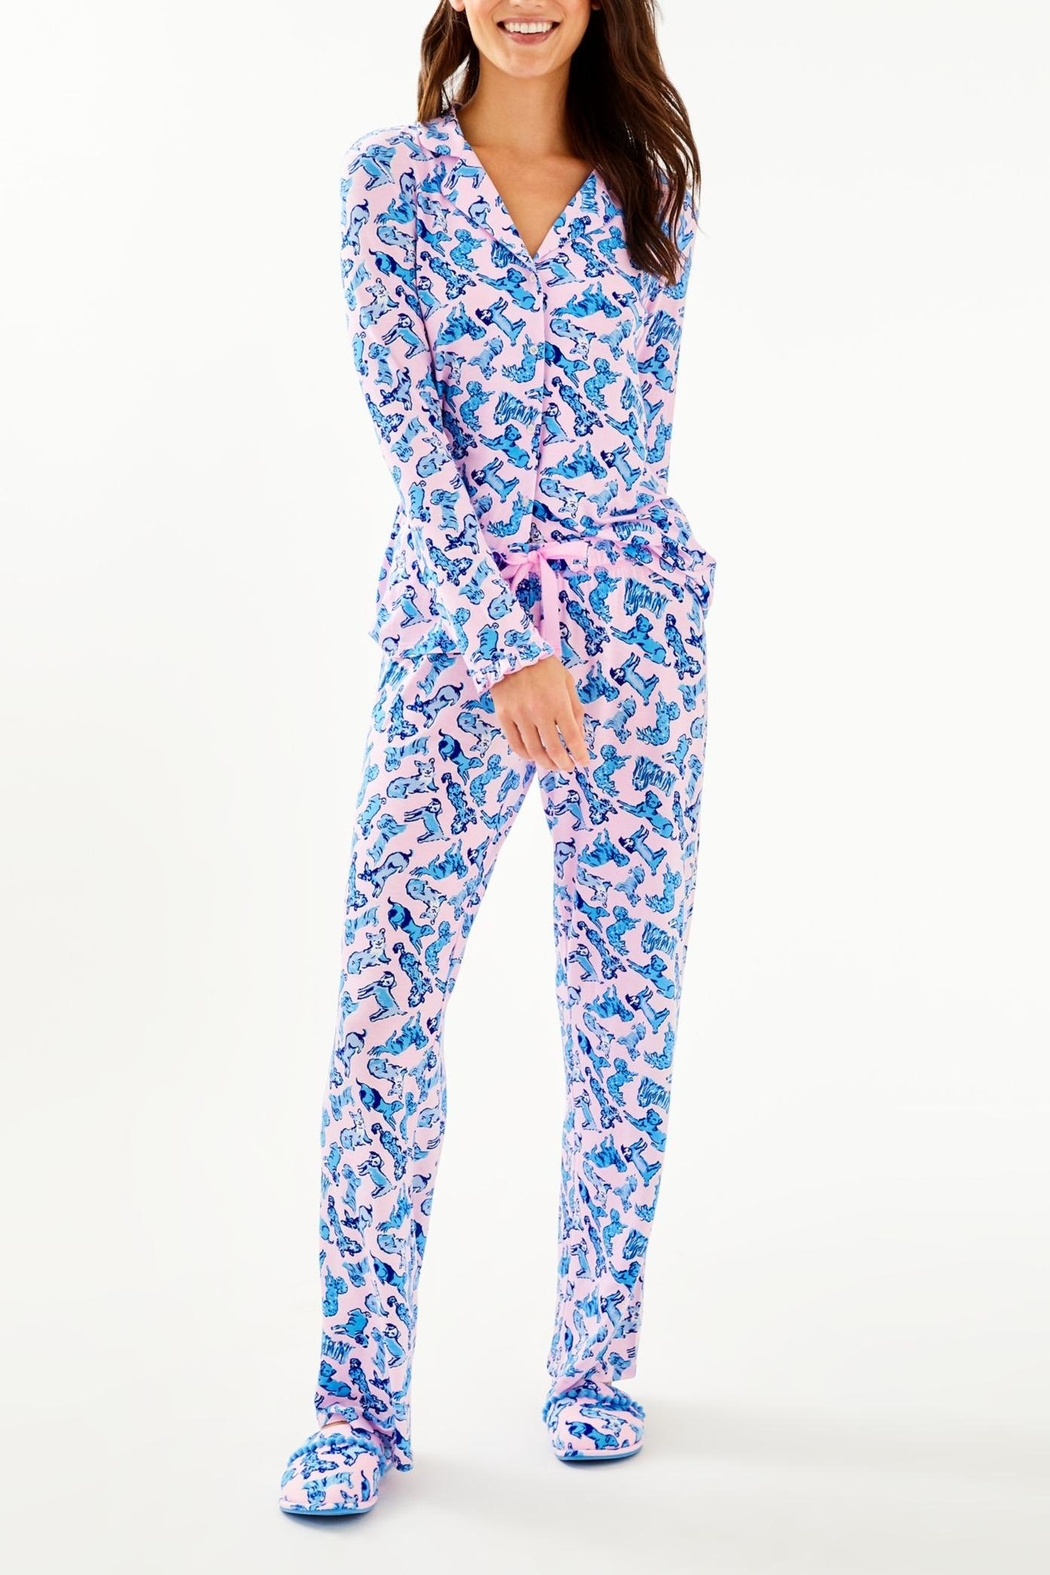 Lilly Pulitzer Pj Knit Pant - Back Cropped Image